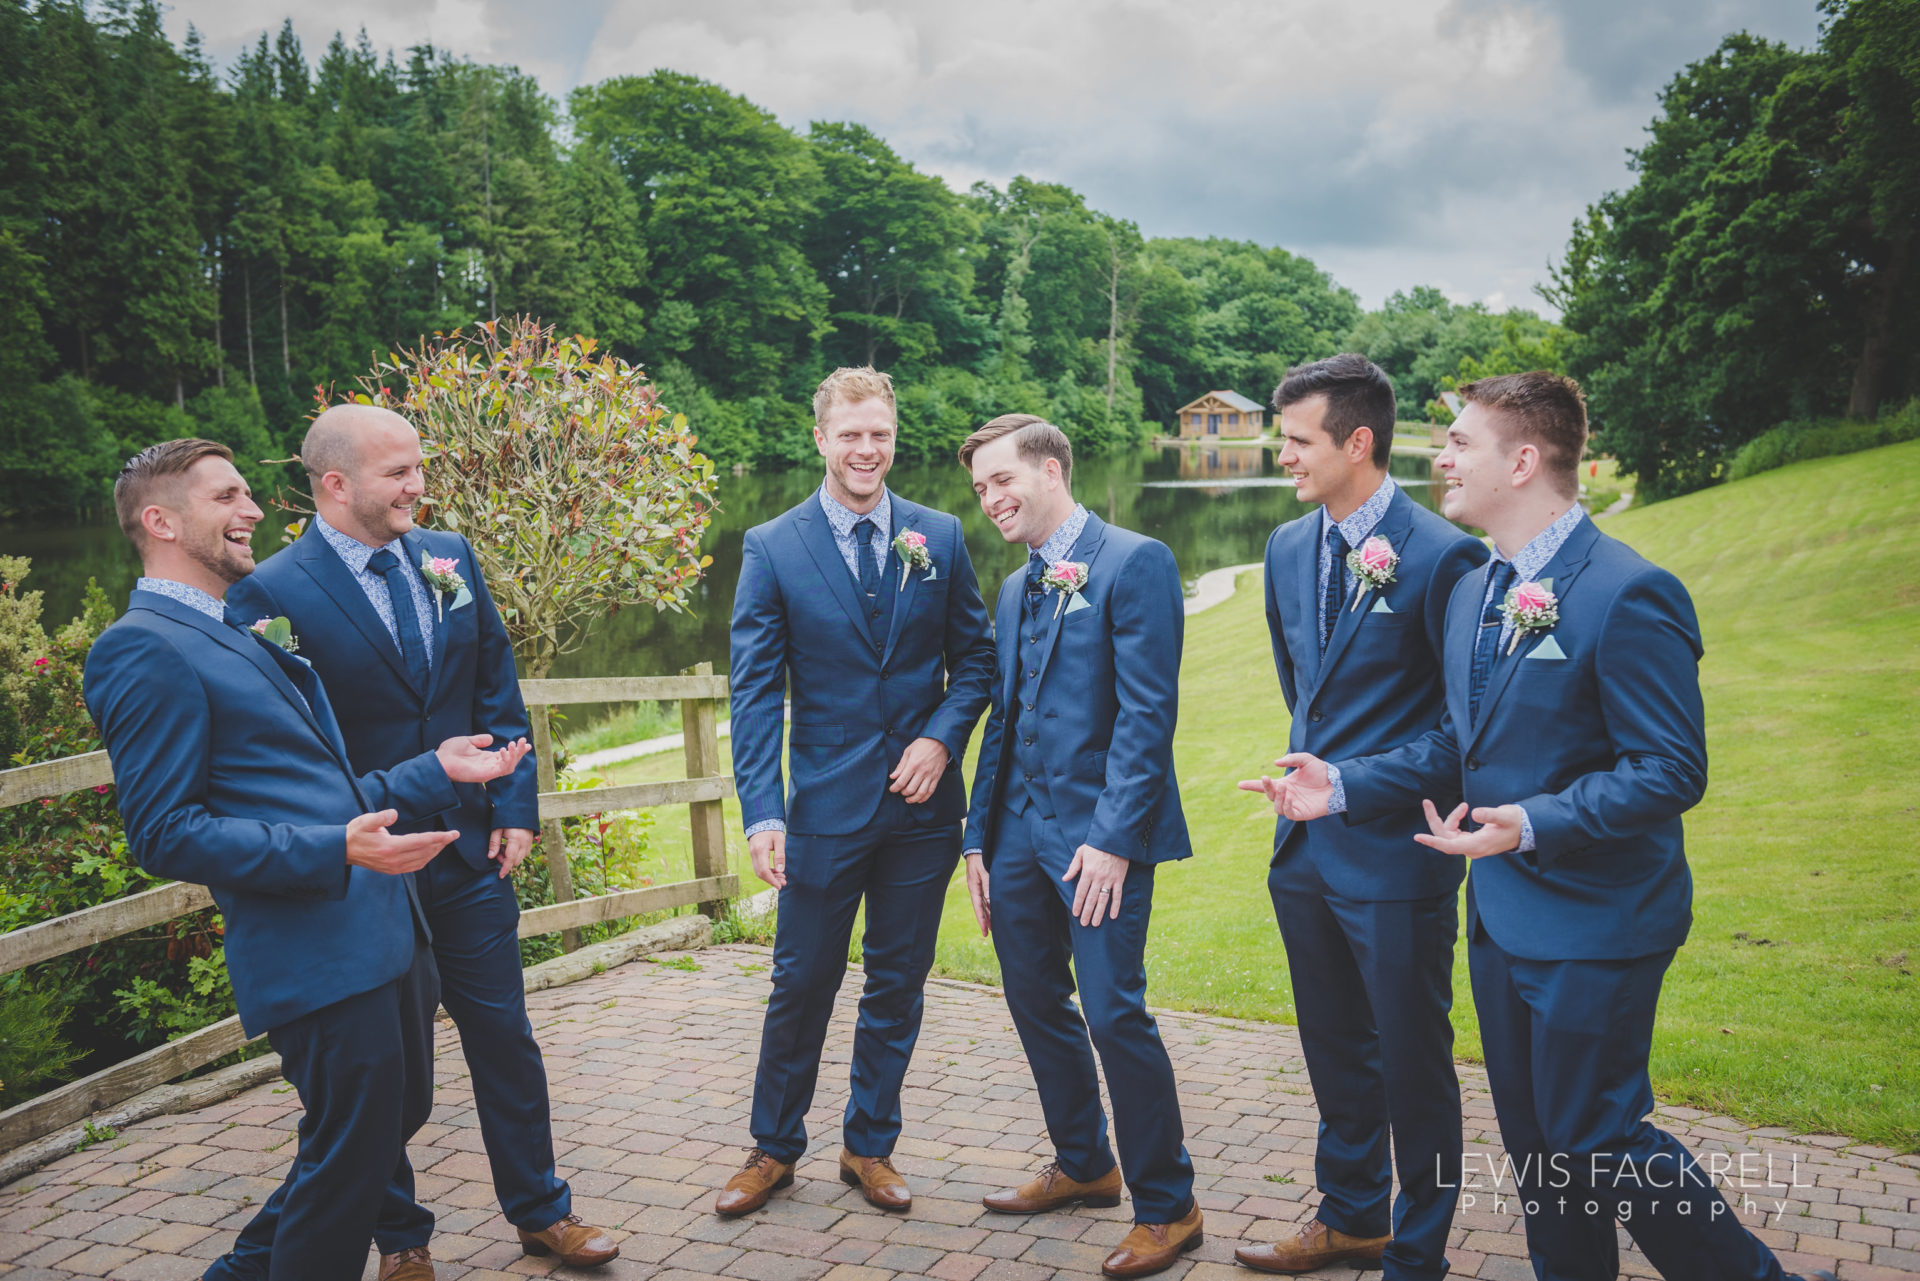 Lewis-Fackrell-Photography-Wedding-Photographer-Cardiff-Swansea-Bristol-Newport-Pre-wedding-photoshoot-cerian-dan-canada-lake-lodge-llantrisant--49